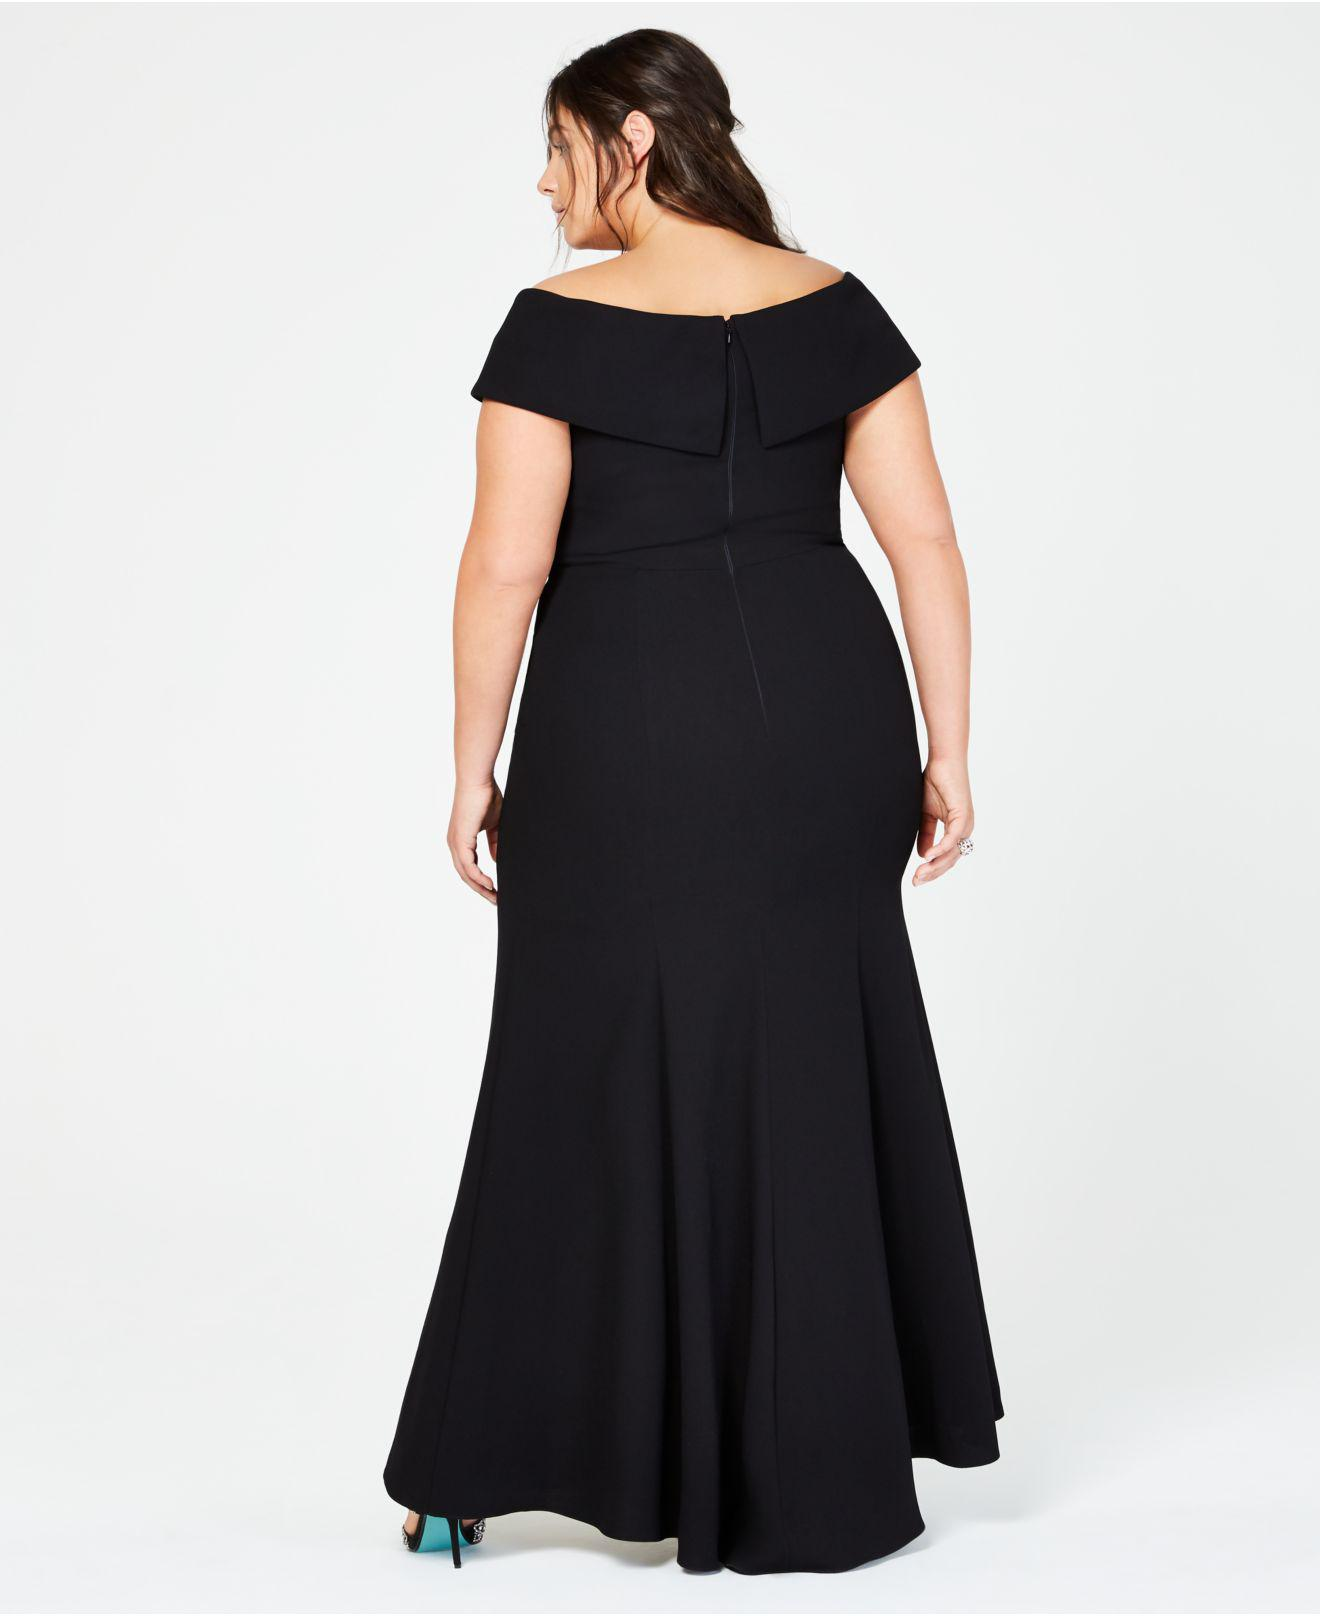 a99956acbcadd Lyst - Xscape Plus Size Off-the-shoulder Slit Gown in Black